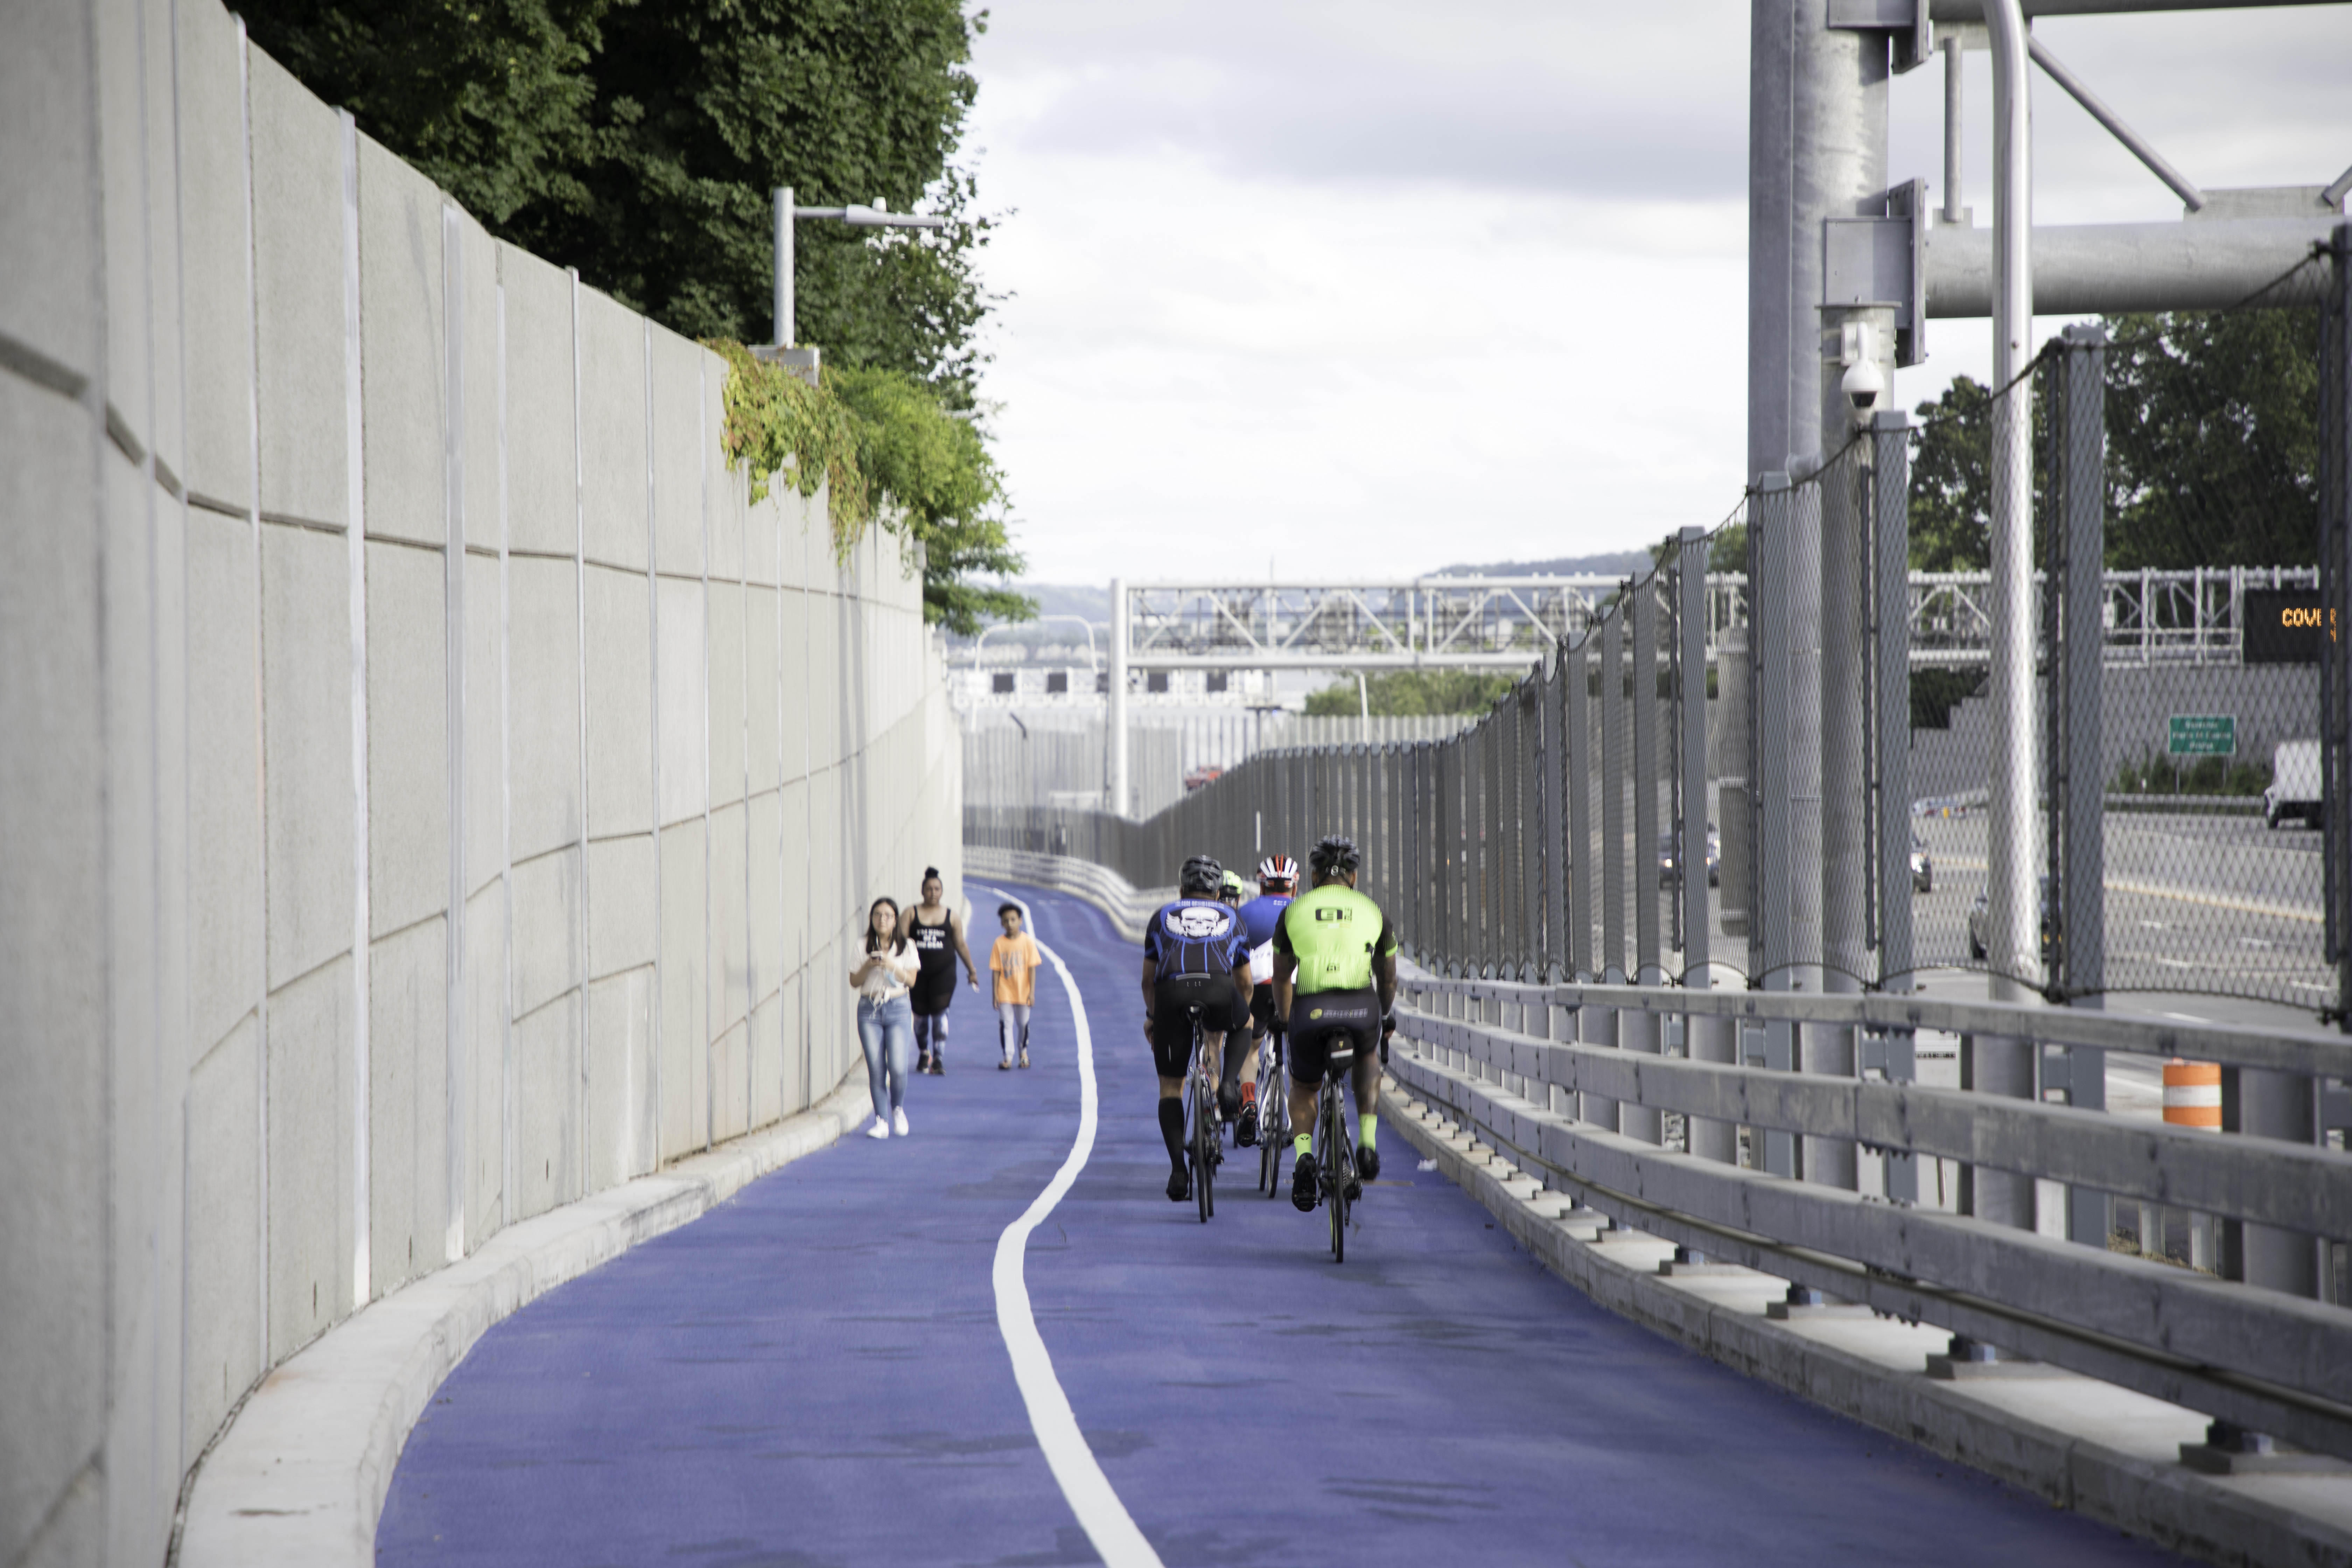 Cyclists and pedestrians on path